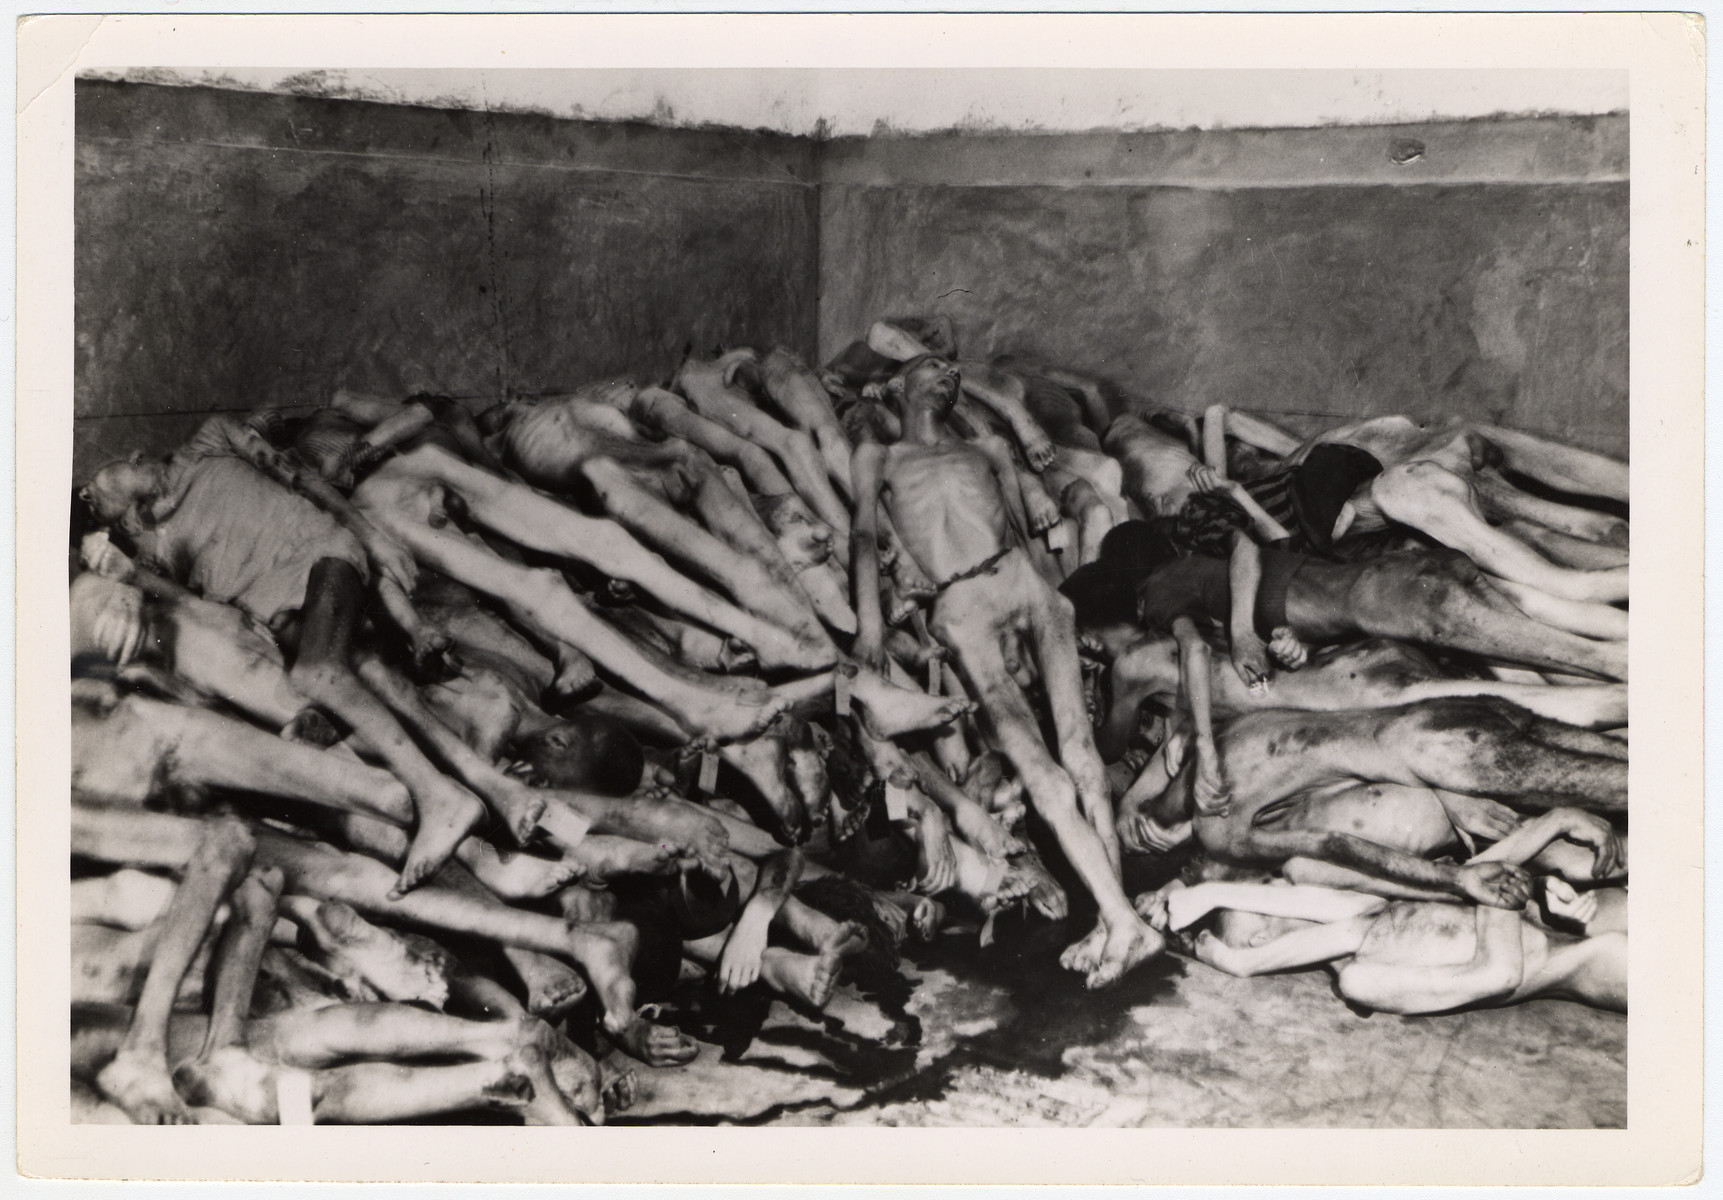 """Pile of deceased prisoners in the Dachau concentration camp, found near the crematorium.  Original caption reads: """"Dachau Atrocity Camp: Stacked like cordwood, naked bodies of inmates of the infamous Dachau concentration camp were awaiting cremation when the 7th U.S. Army troops liberated the camp. A pool of blood gathers on the floor.""""   Original caption from donated photograph reads:  """"Stacked like corwood, these bodies were awaiting cremation when Seventh Army troops liberated the camp.  A pool of blood gathers on the floor."""""""